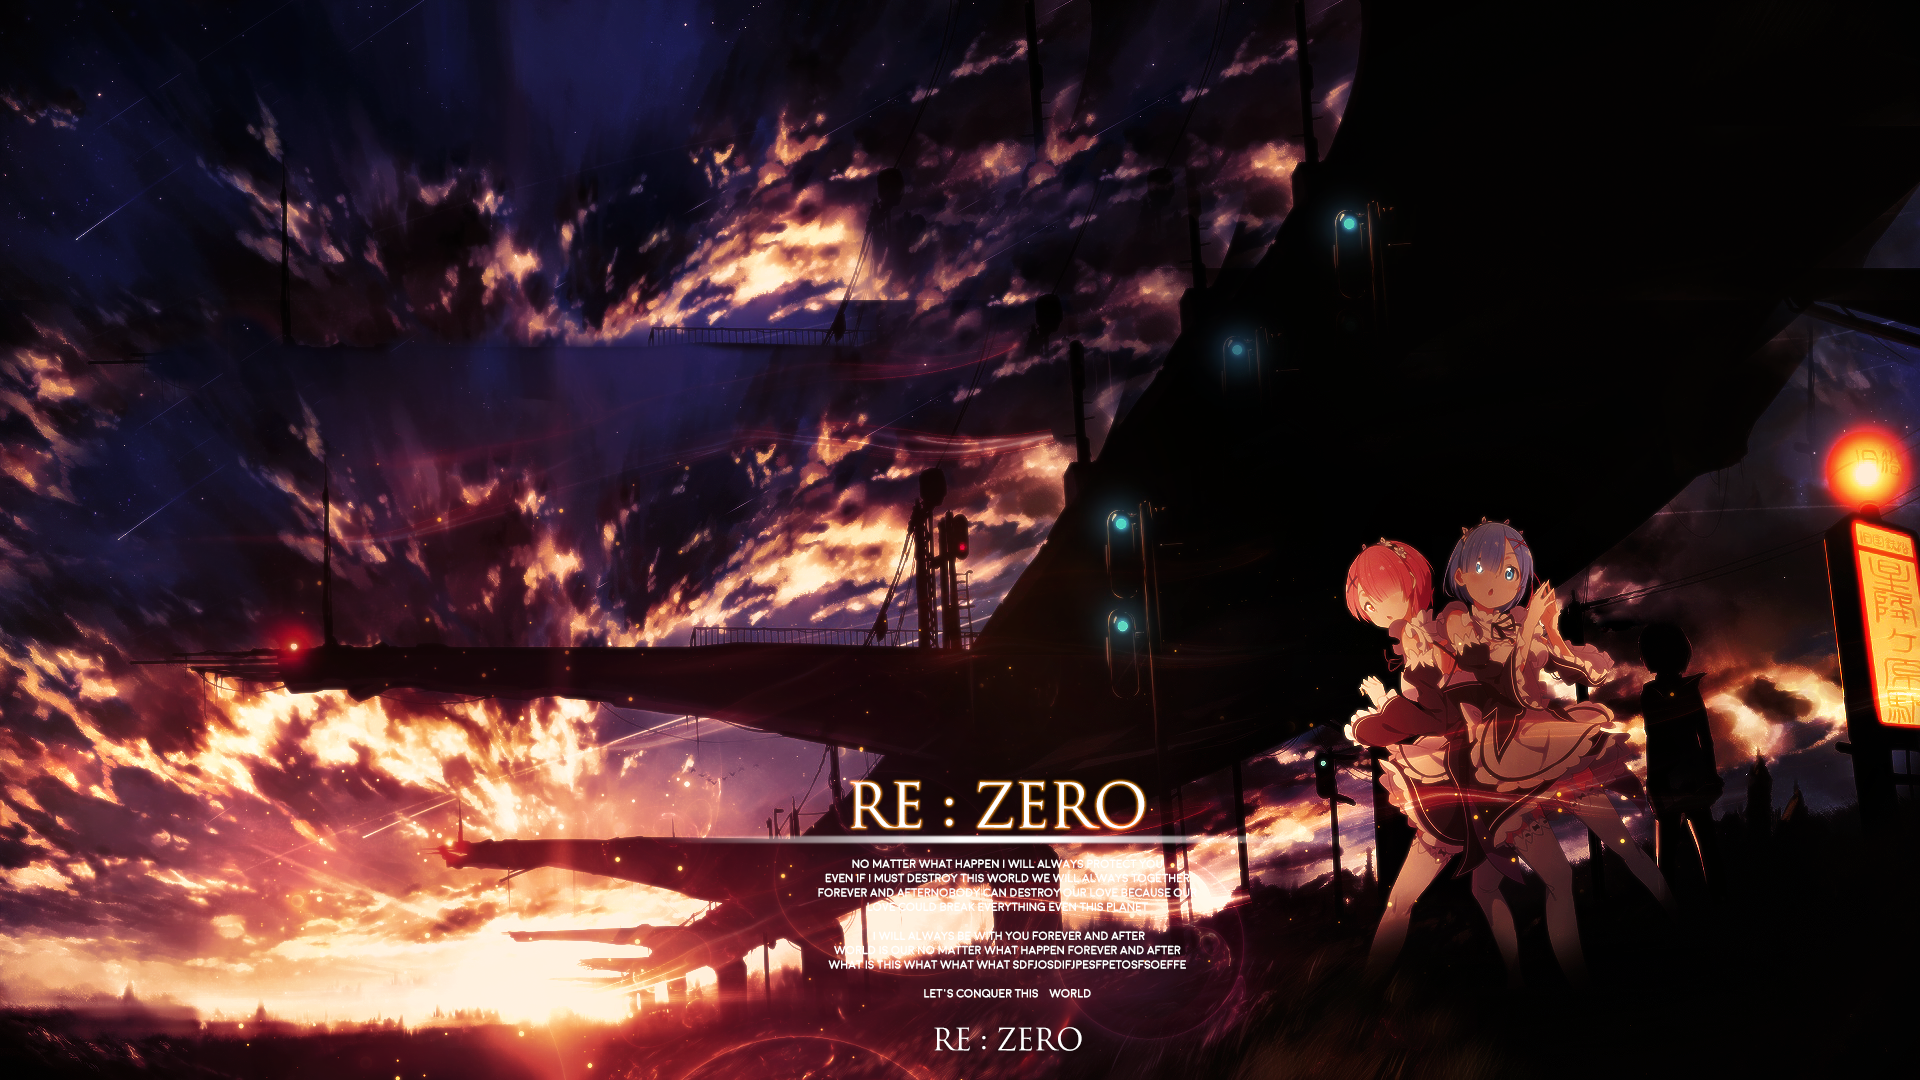 Can-someone-please-remove-all-the-text-and-remove-the-white-line-Re-zero-1920x1080-Need-iPhone-wallpaper-wp3603877